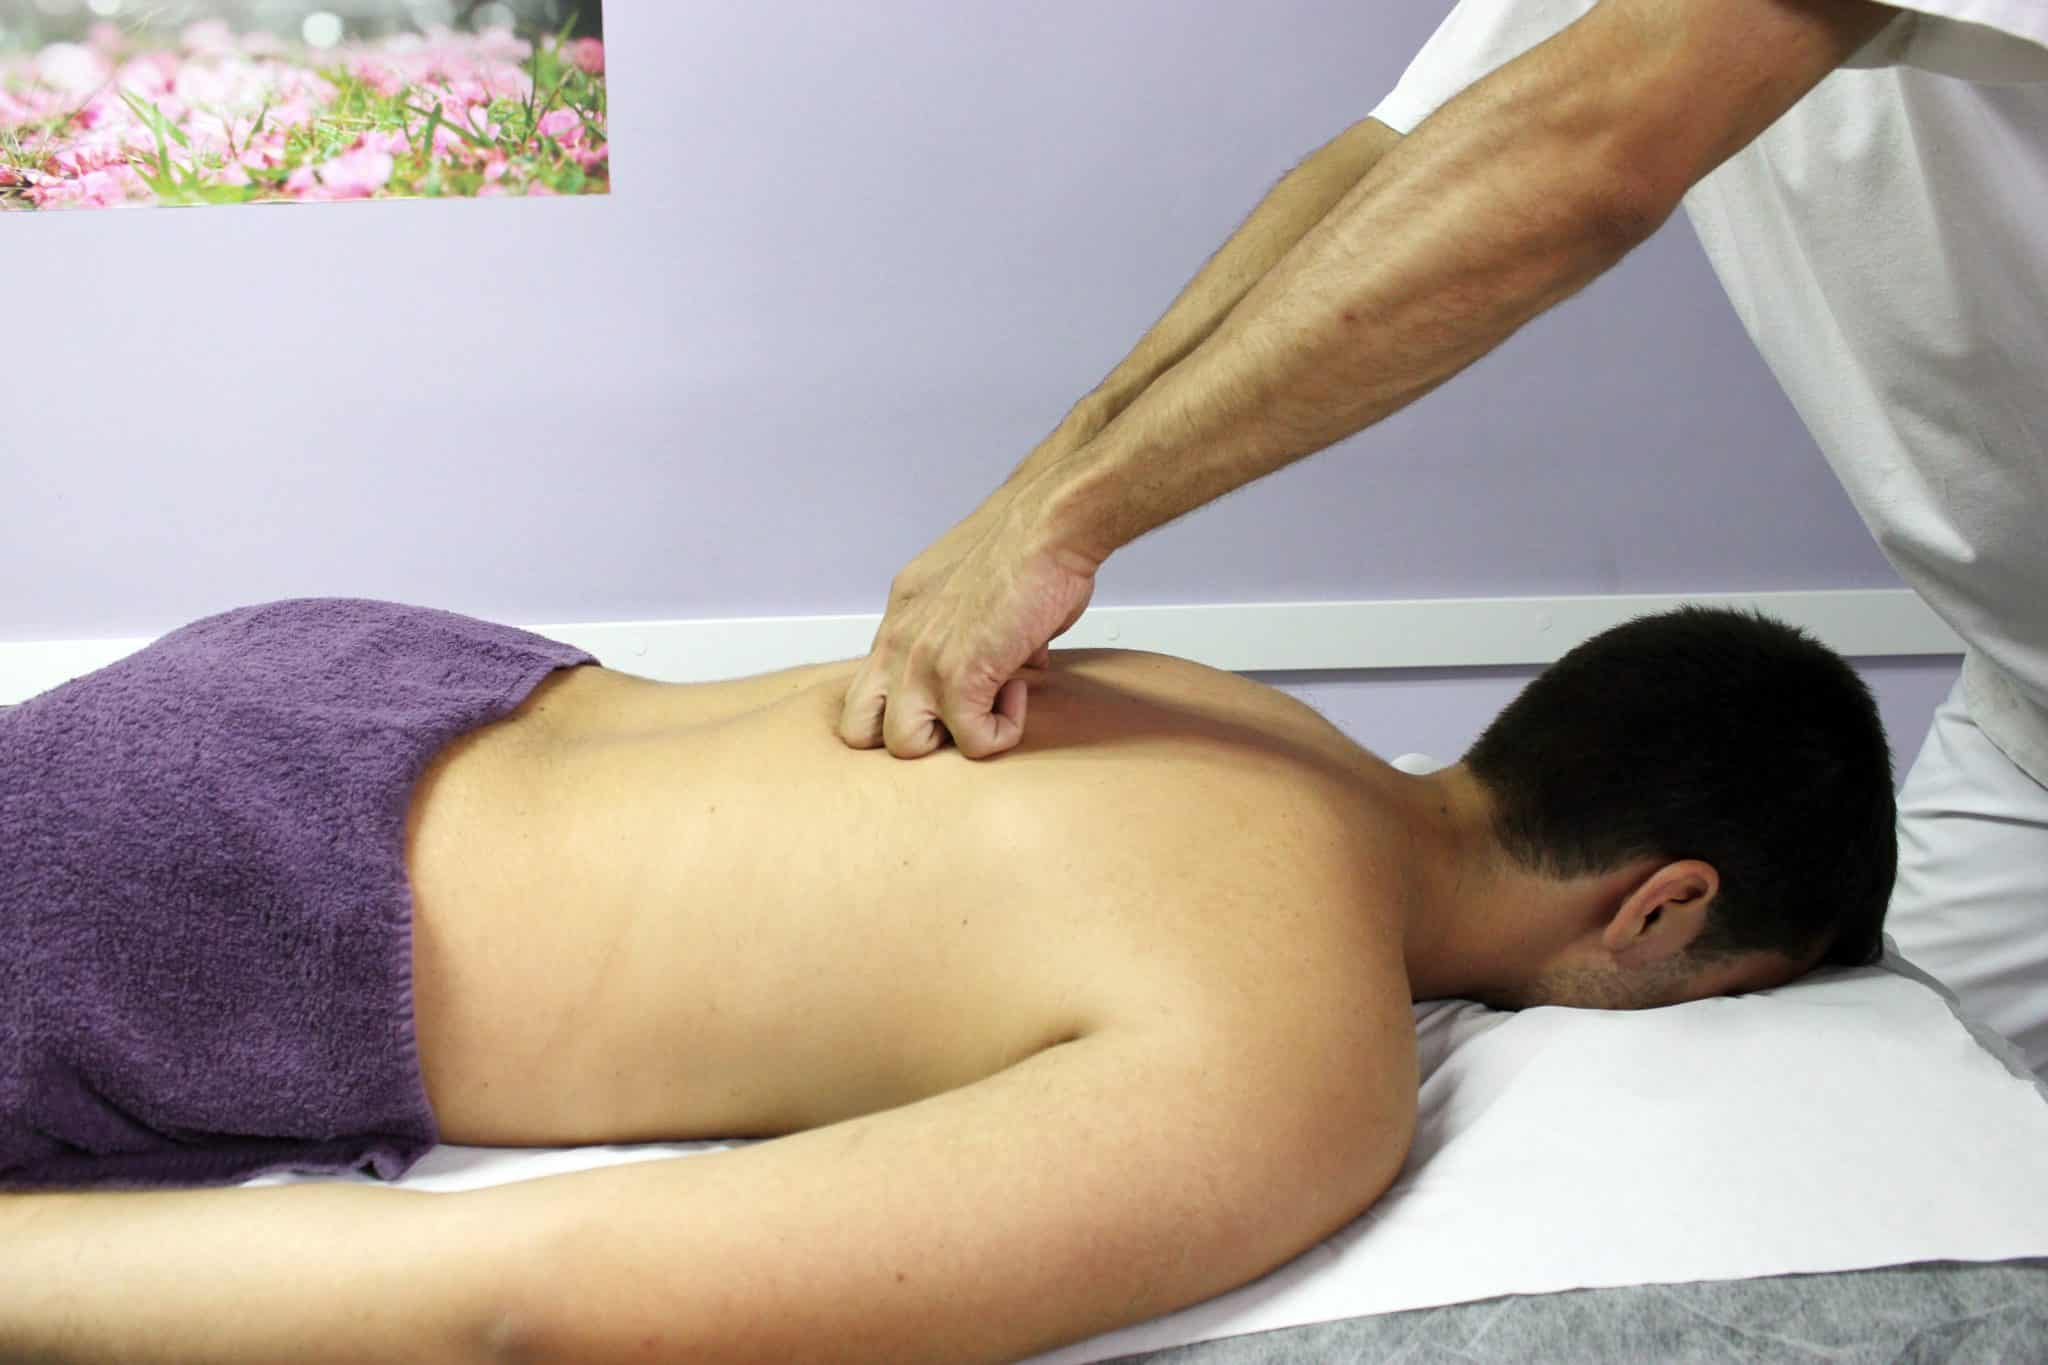 physical therapy chiropractor in gurnee, gurnee il physical therapy contractor, the best chiropractor in gurnee il